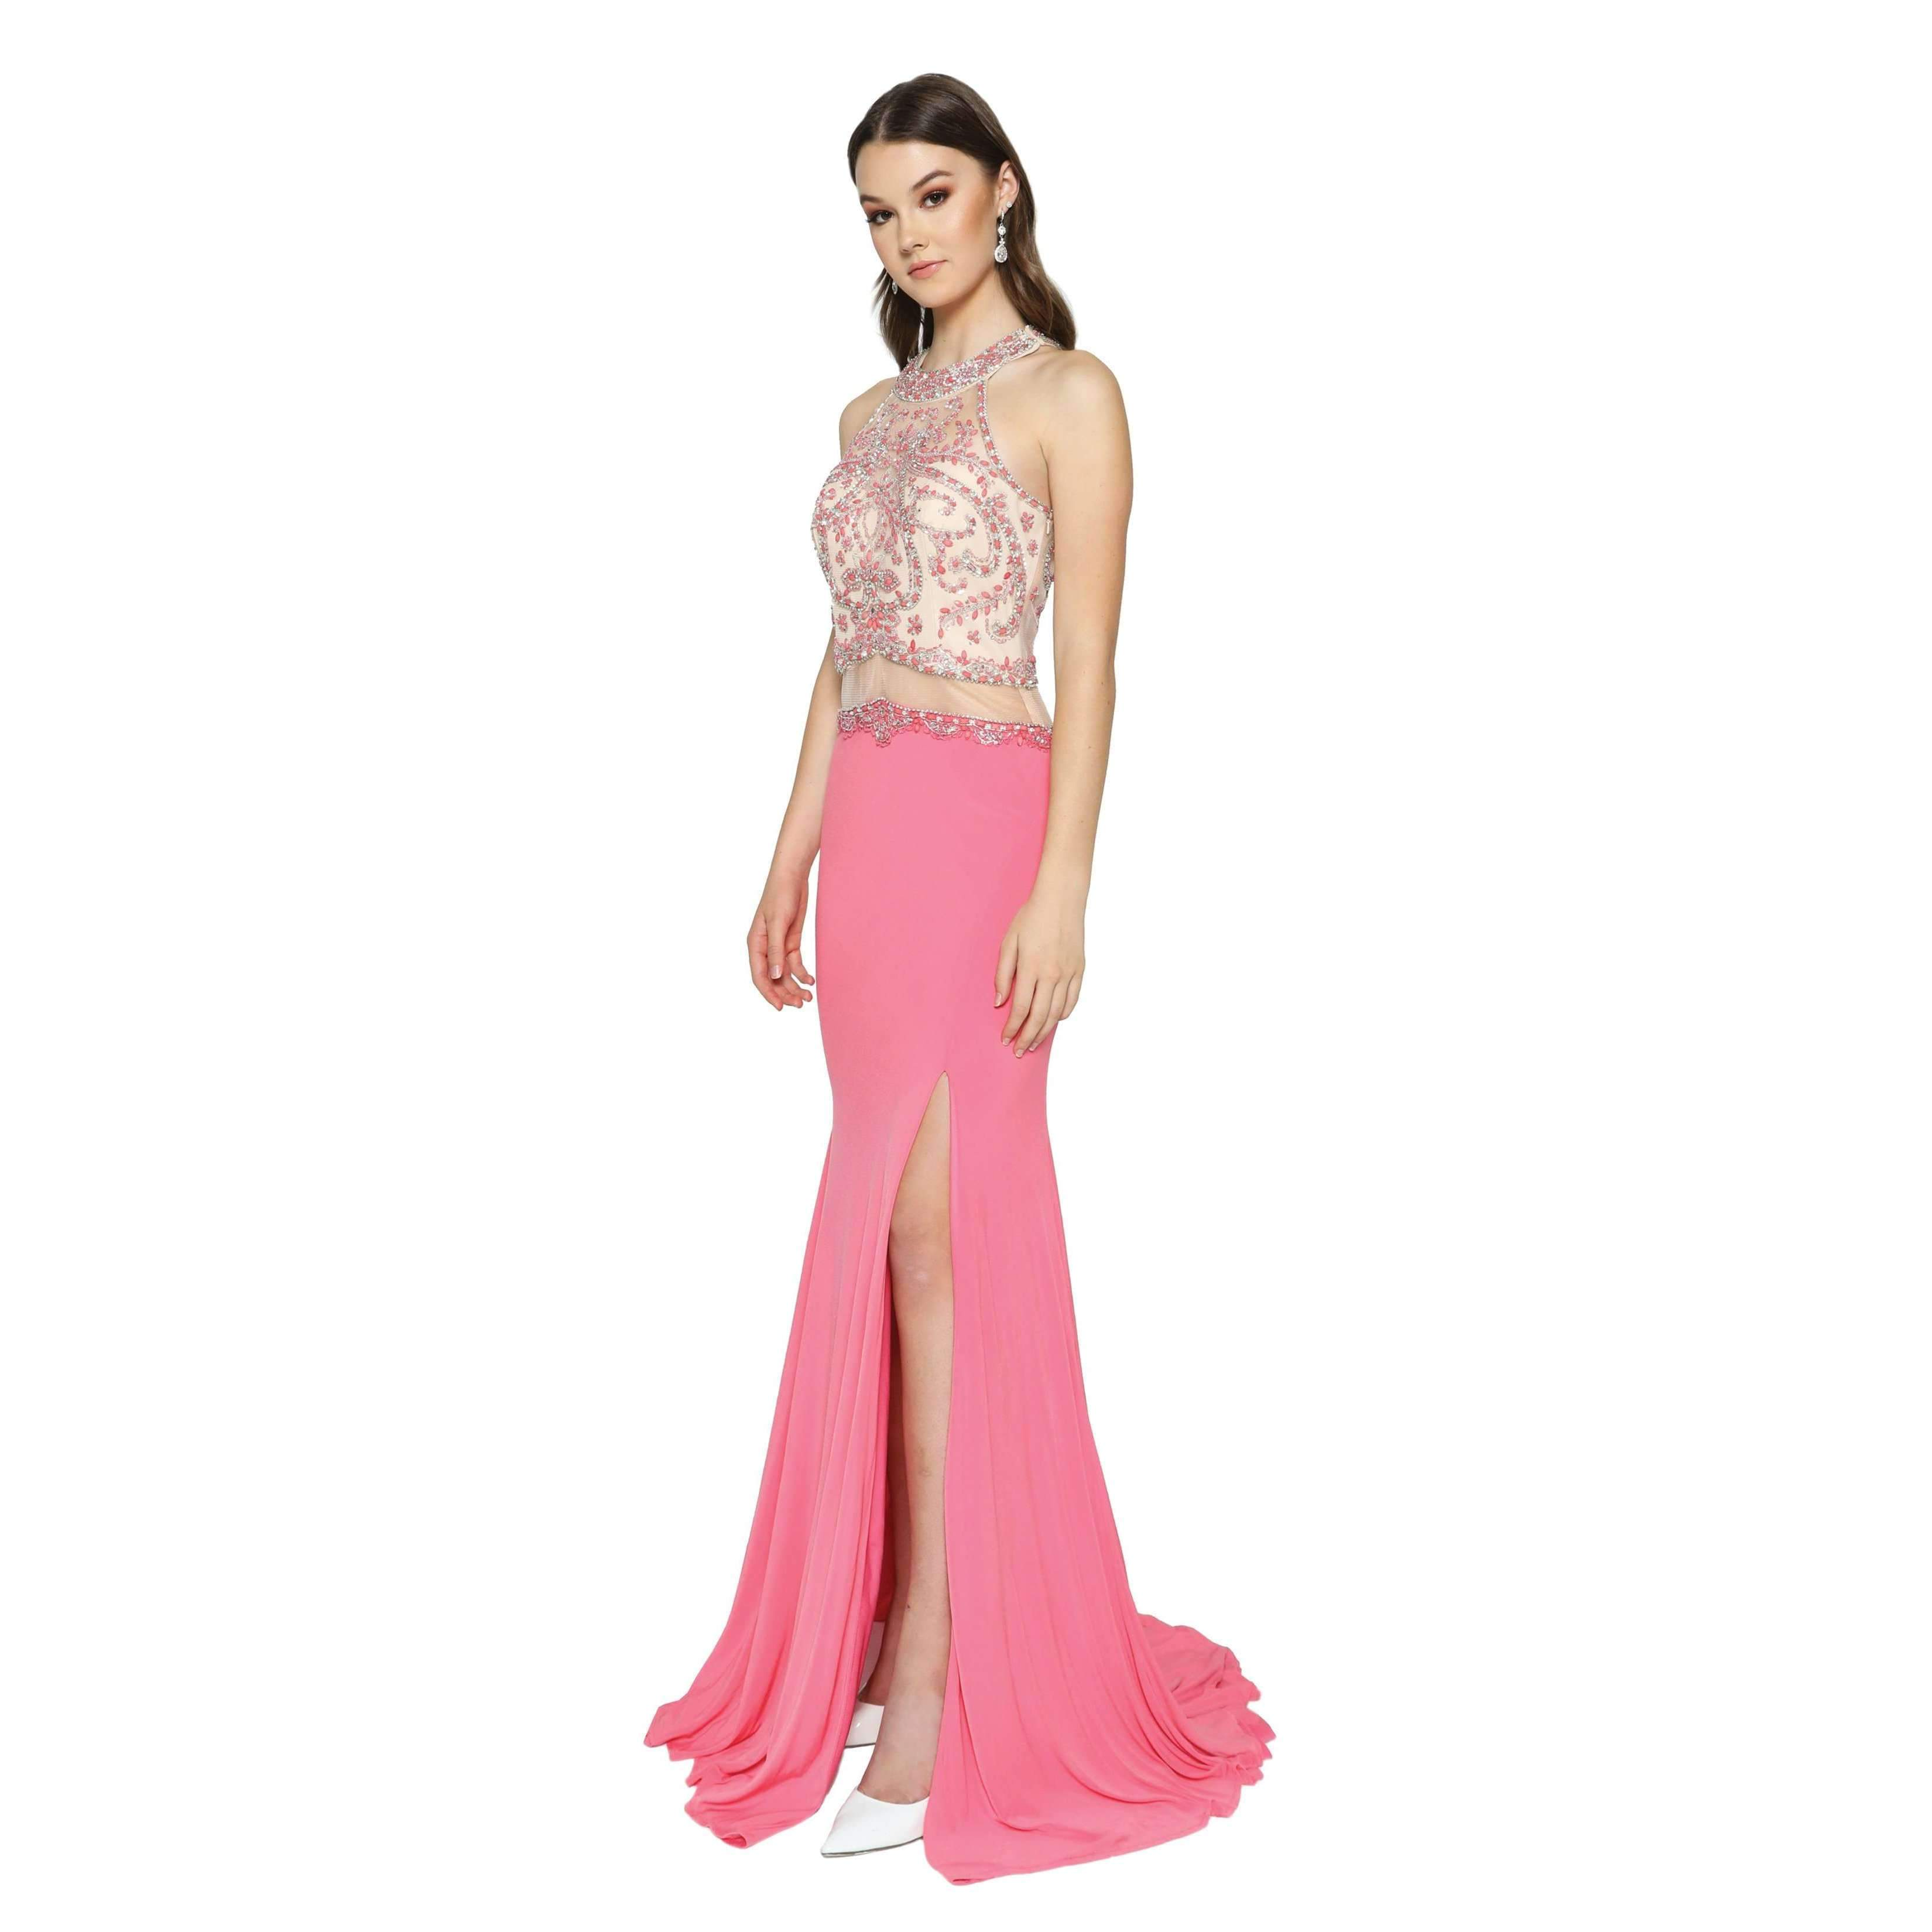 Tight Fitted Prom Dress With High Slit 105 620 Simply Fab Dress